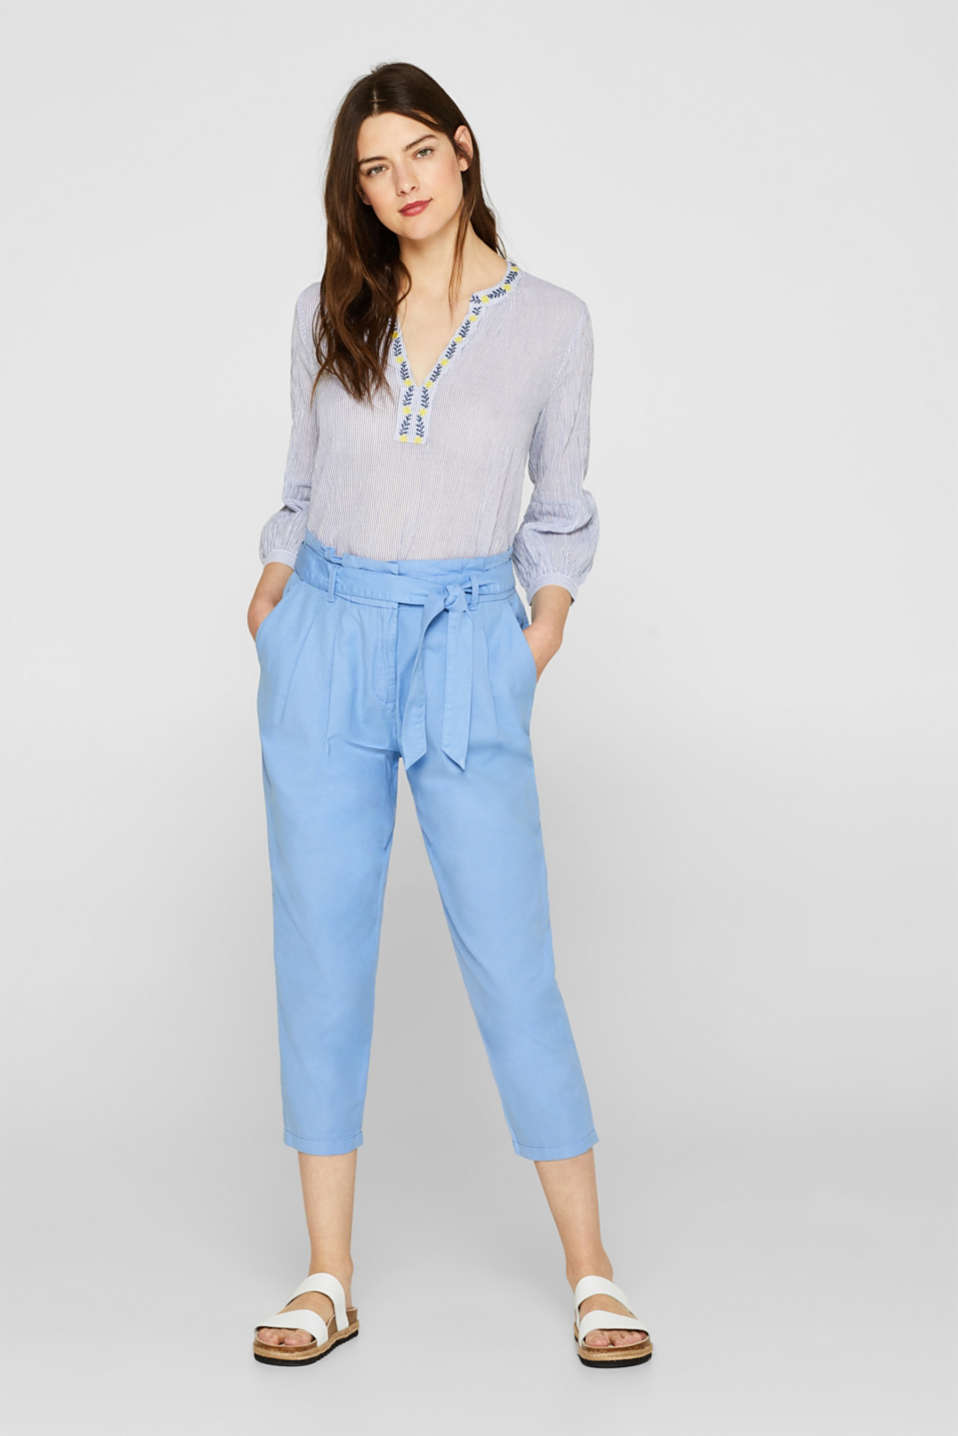 Blended linen paperbag trousers with a percentage of stretch